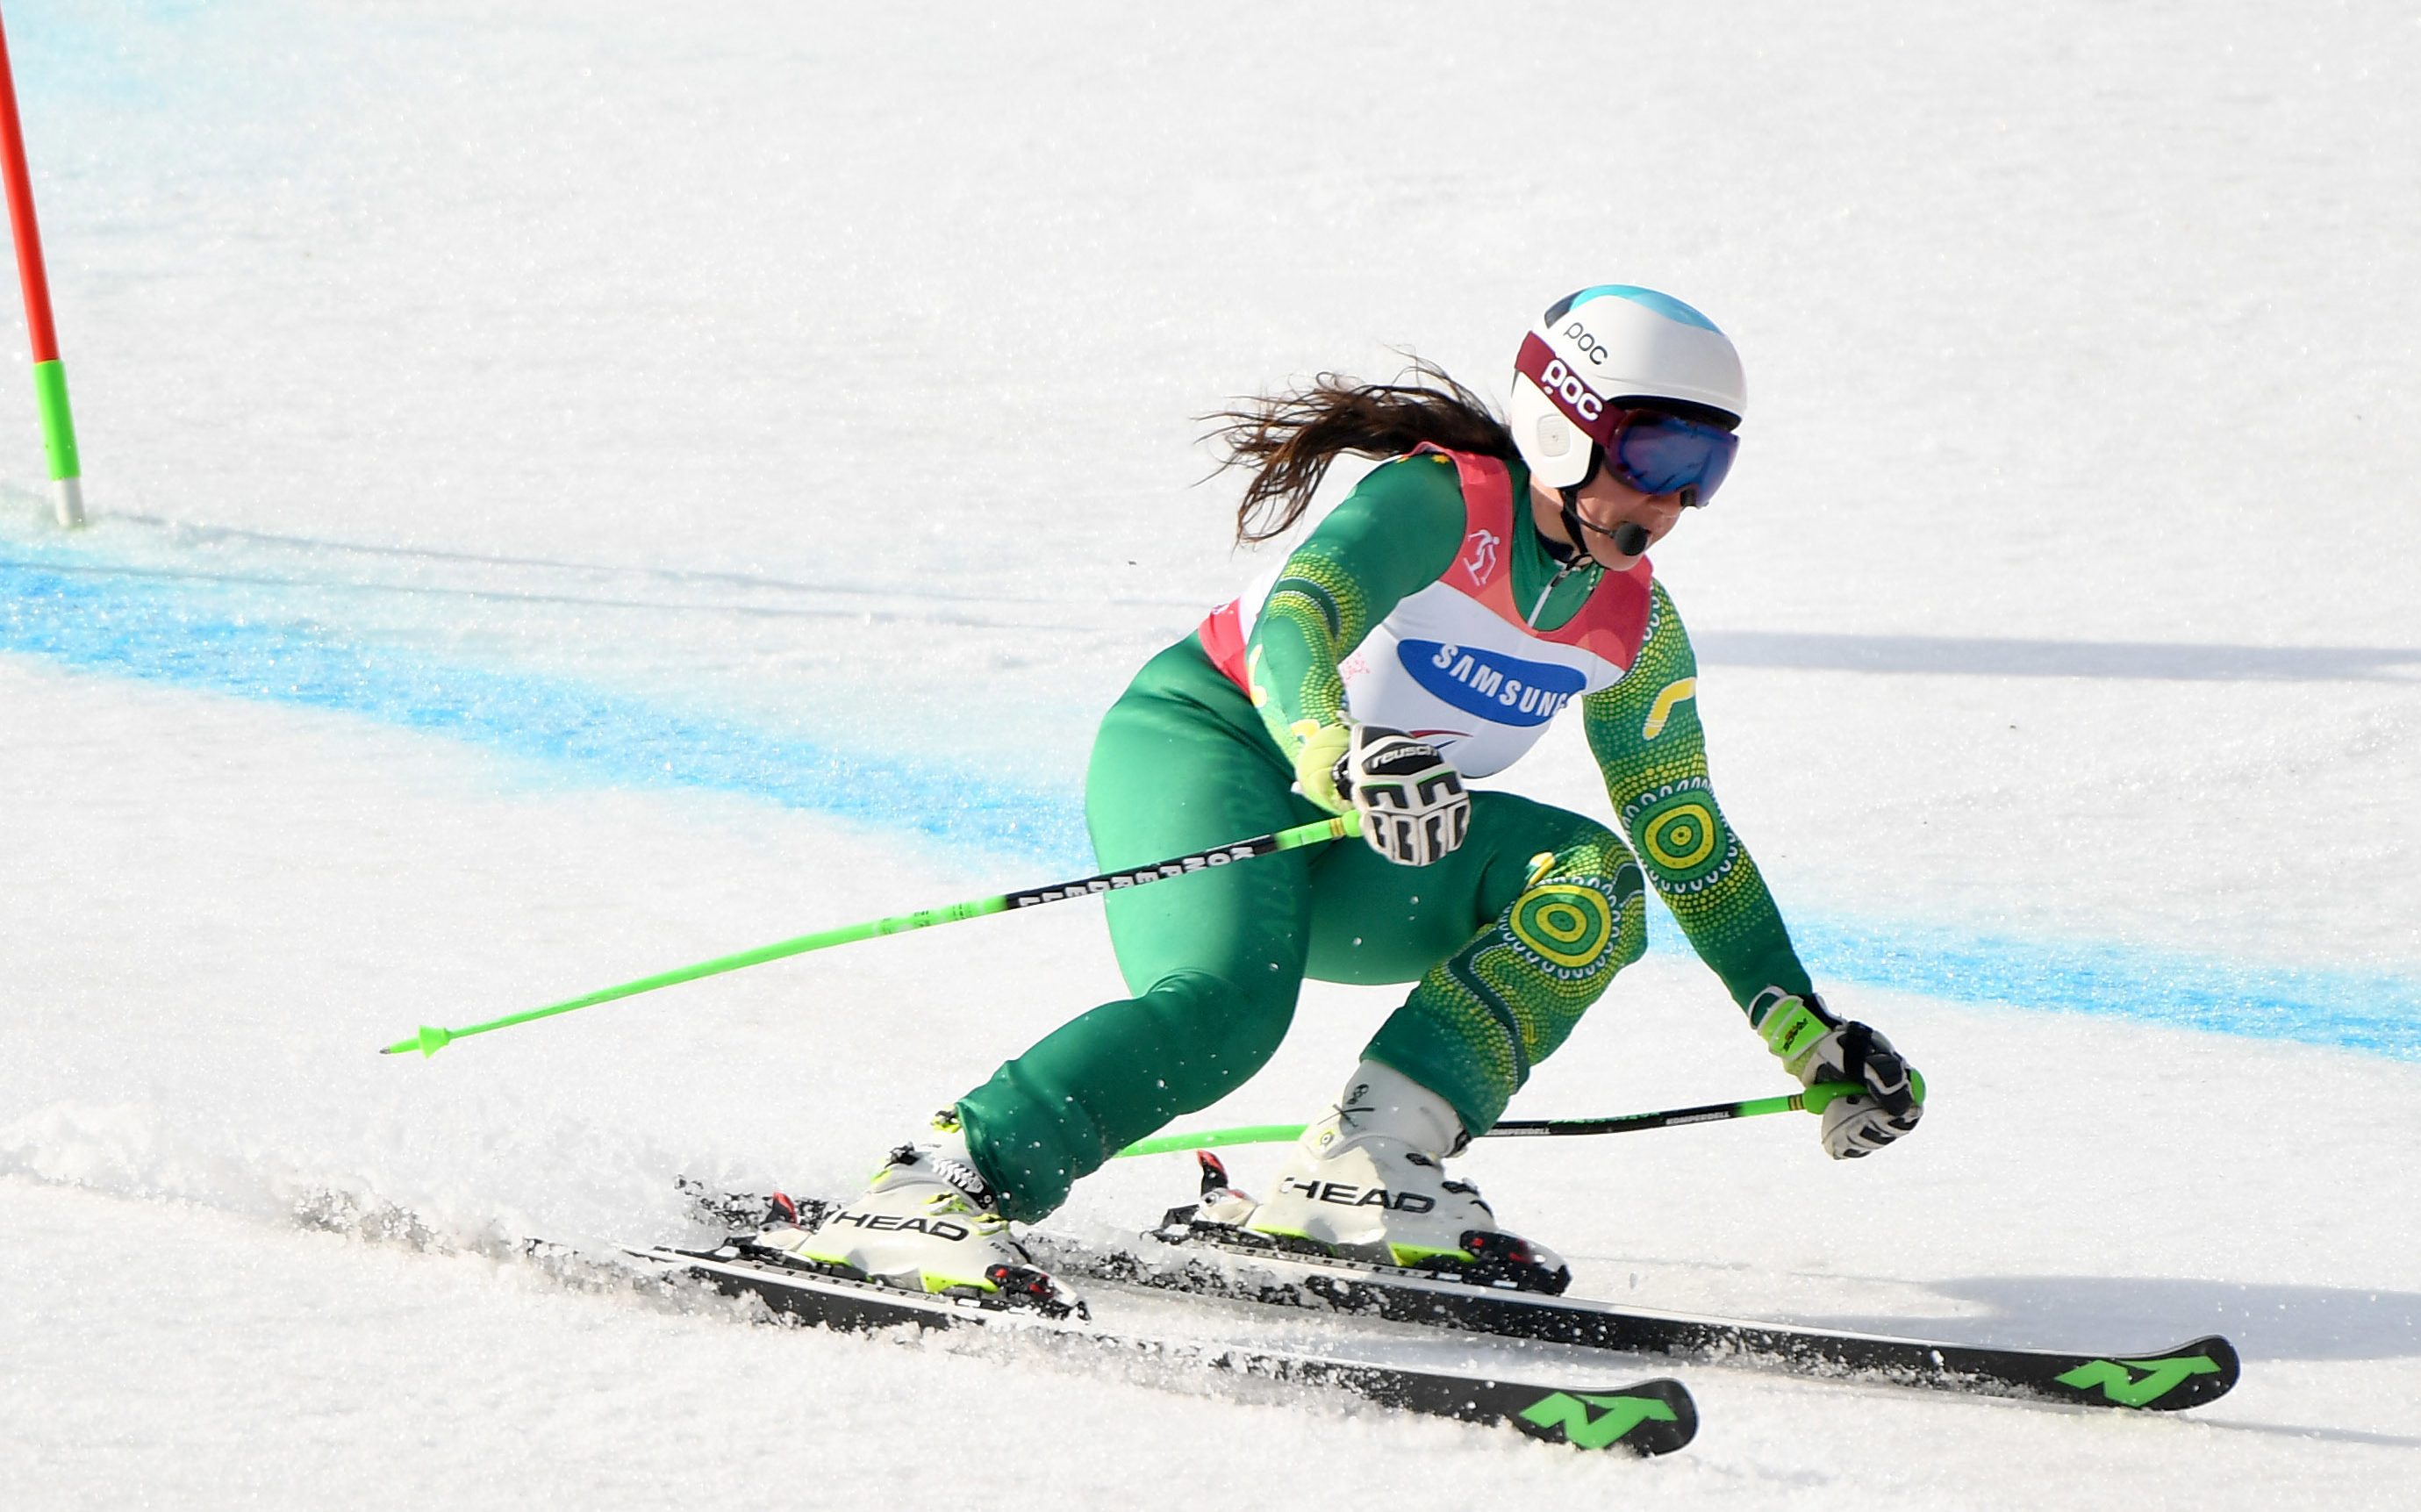 Australian team announced for World Para-alpine skiing Championships